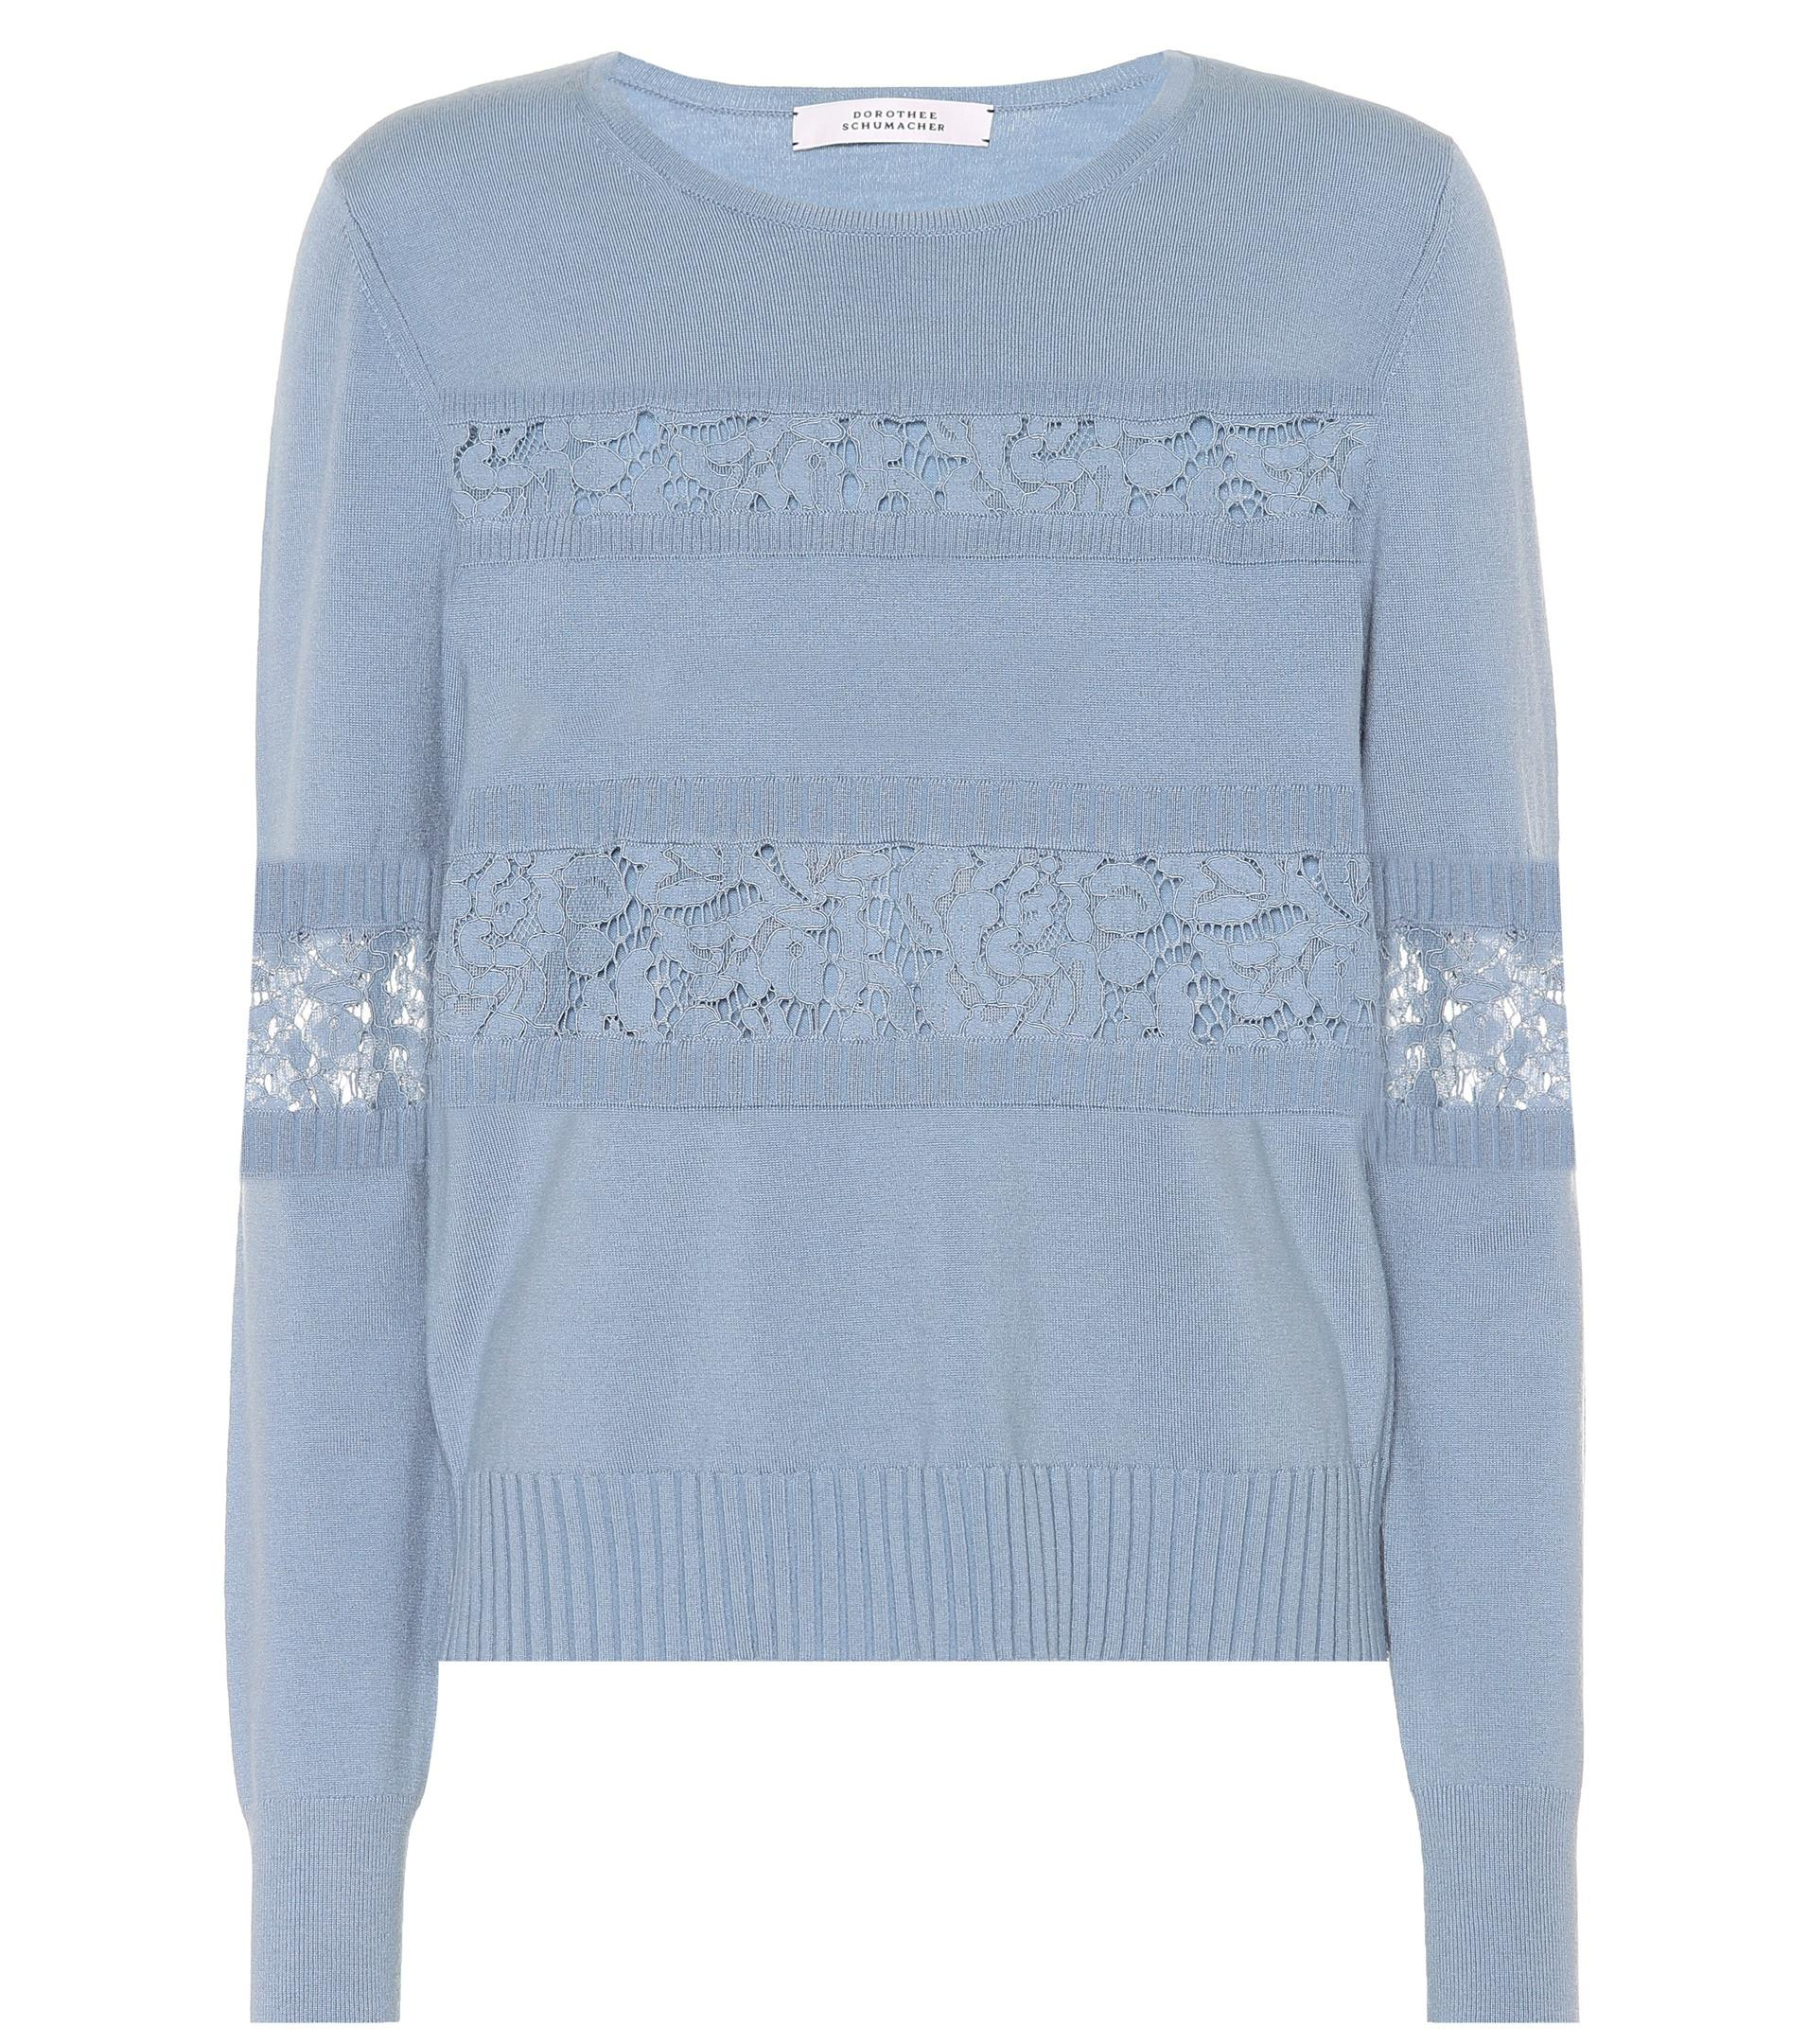 Lyst - Dorothee Schumacher Lace Embrace Wool-blend Sweater in Blue 92e230259